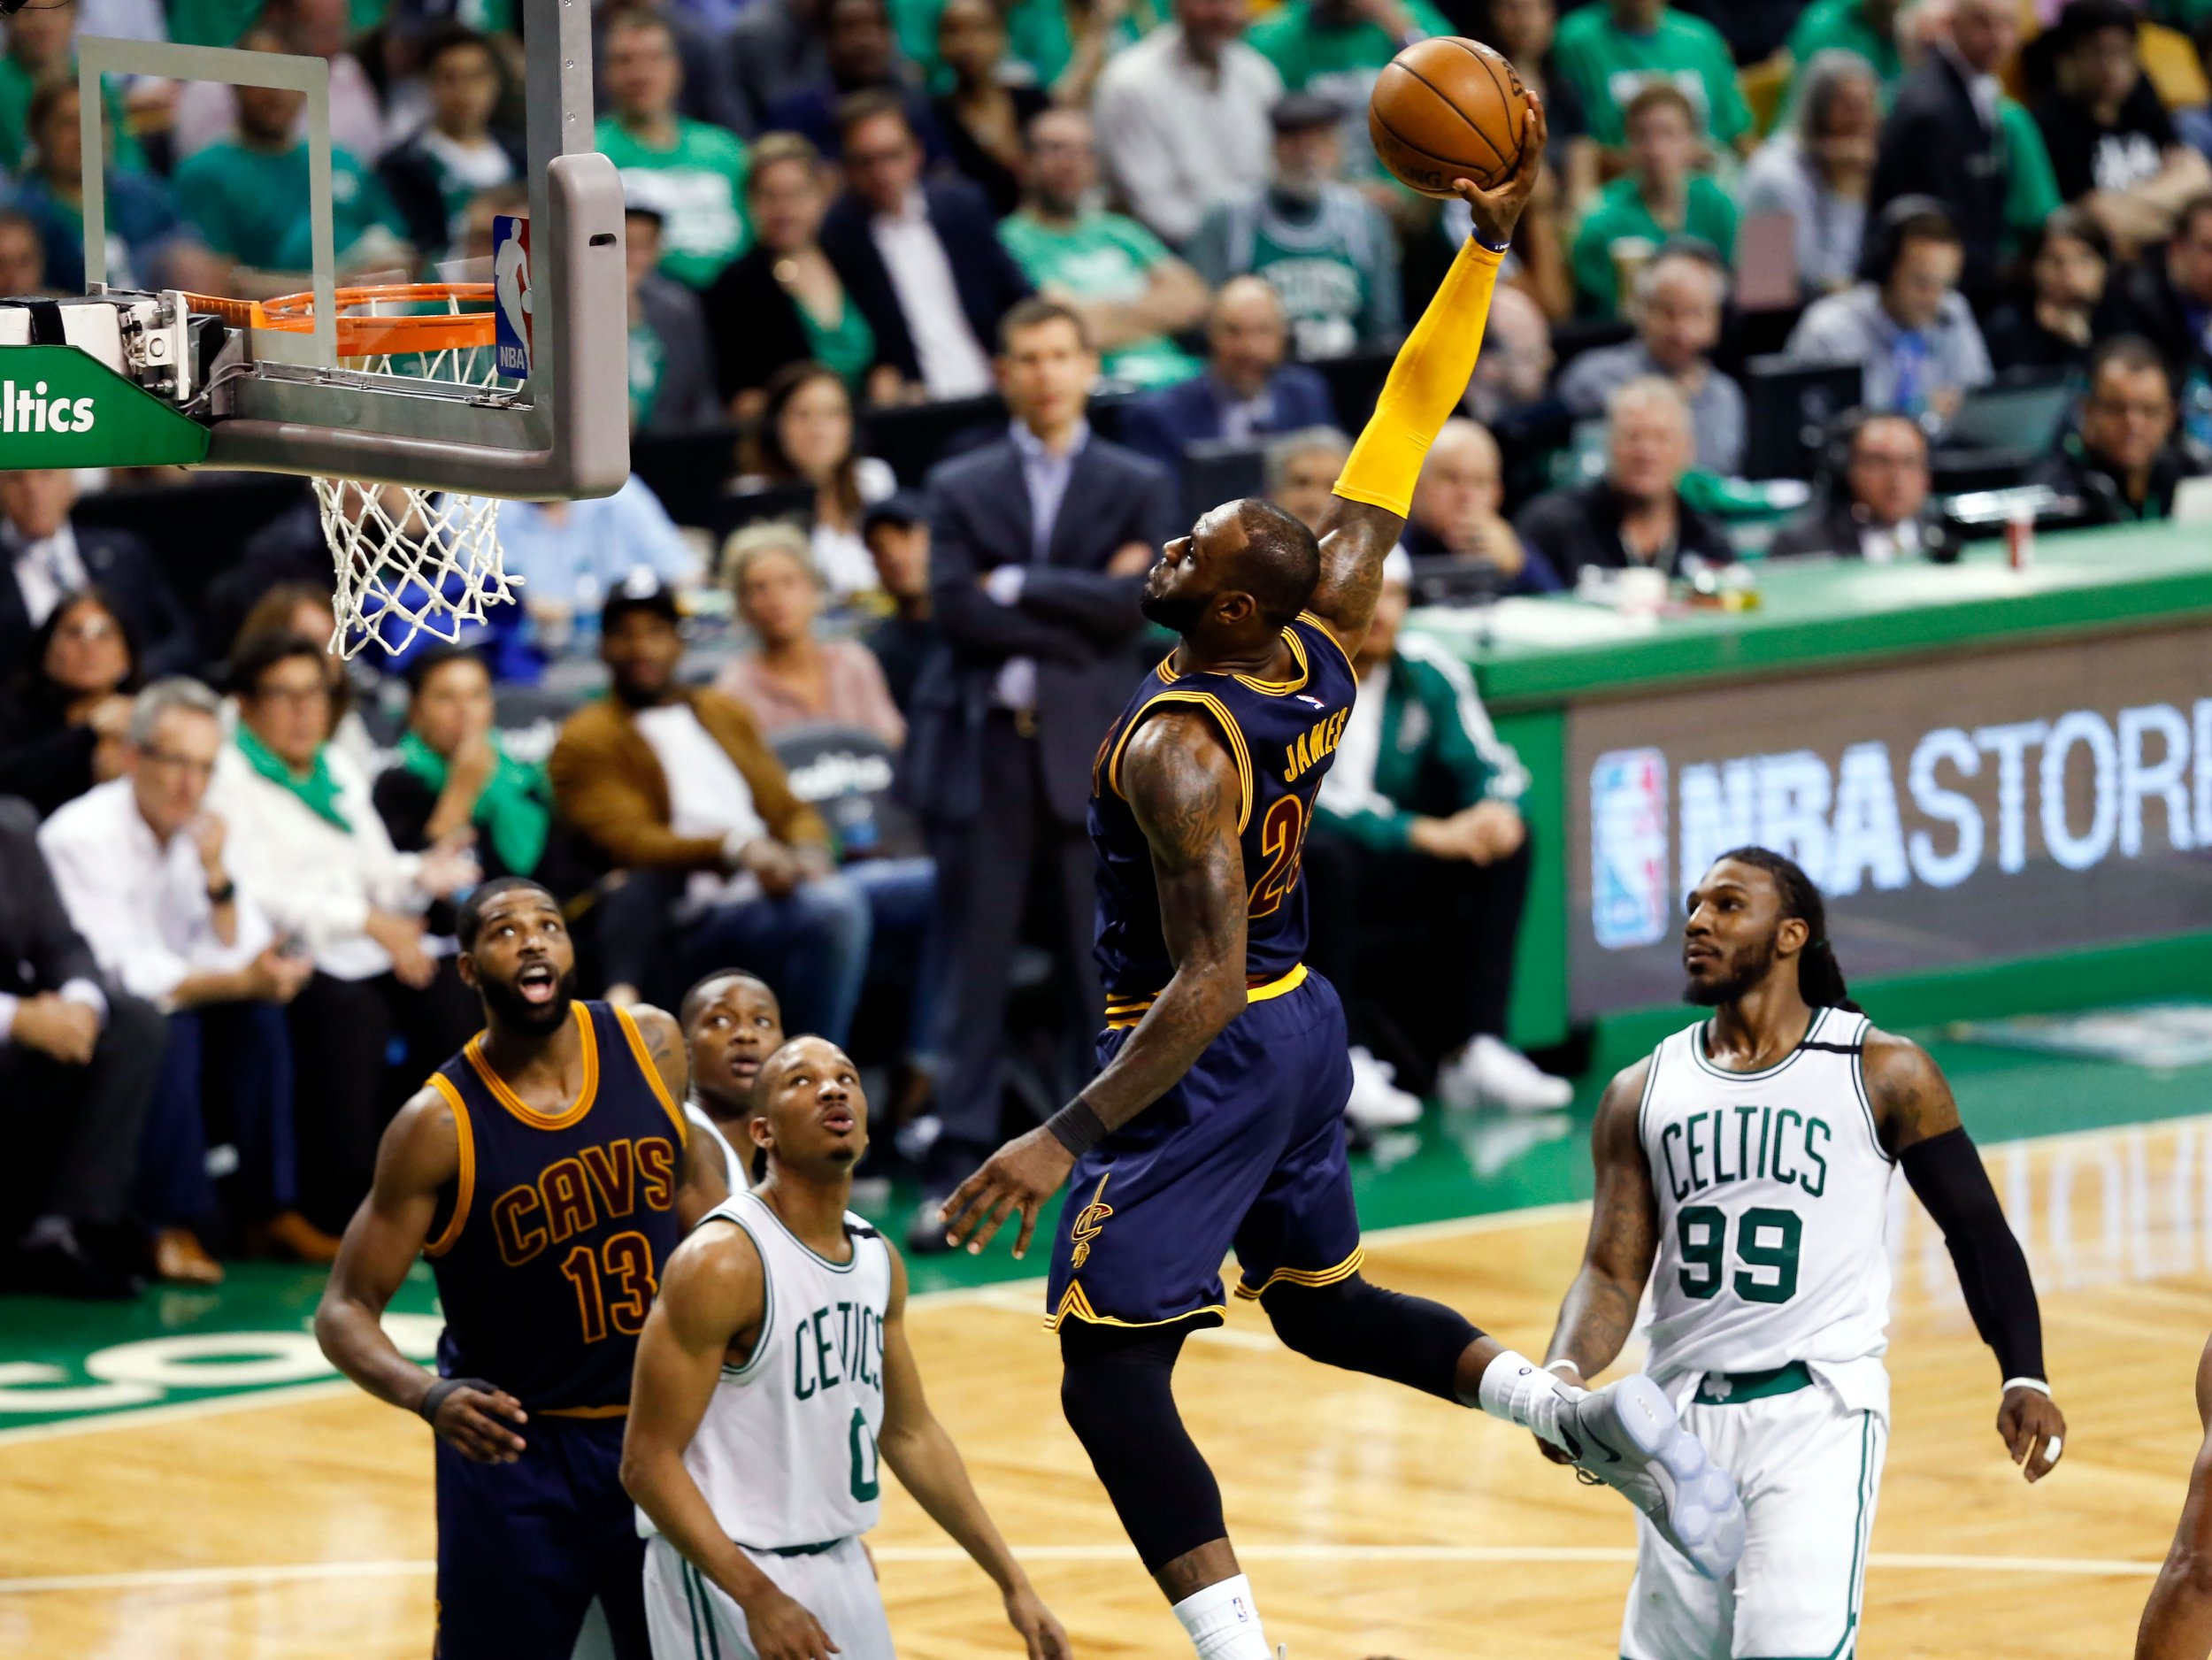 Cleveland Cavaliers forward LeBron James dunks and scores against the Boston Celtics at TD Garden, Boston, May 25.